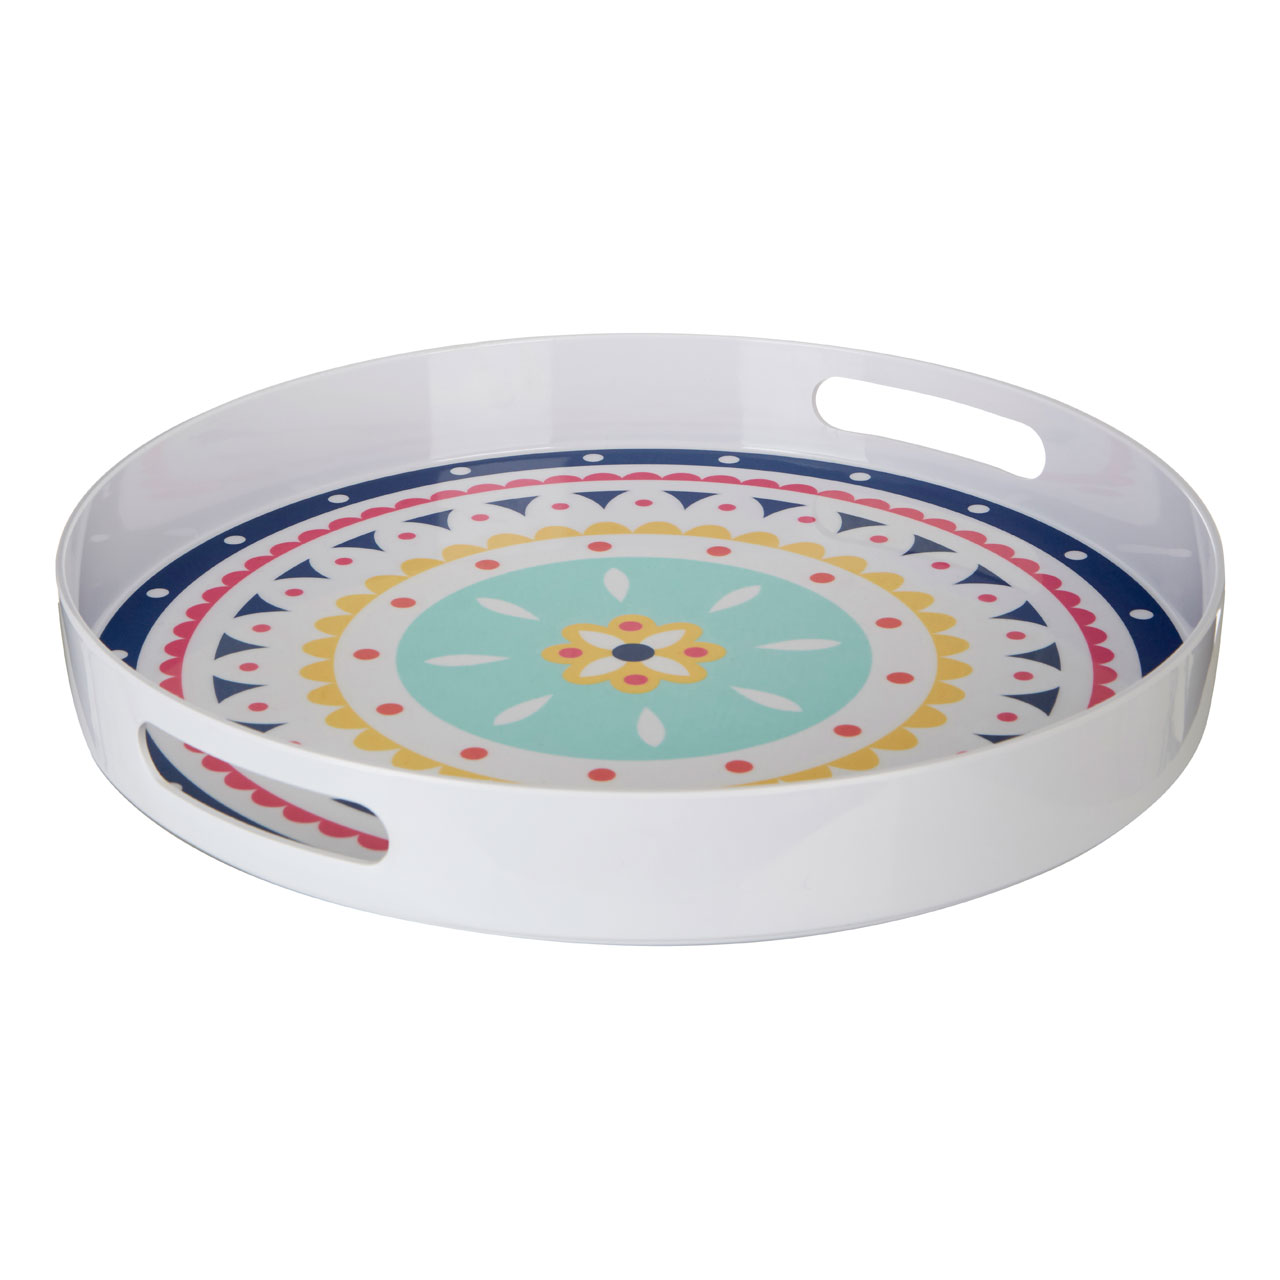 Mimo Bazaar Serving Tray Melamine With Handles Round Food Dishes